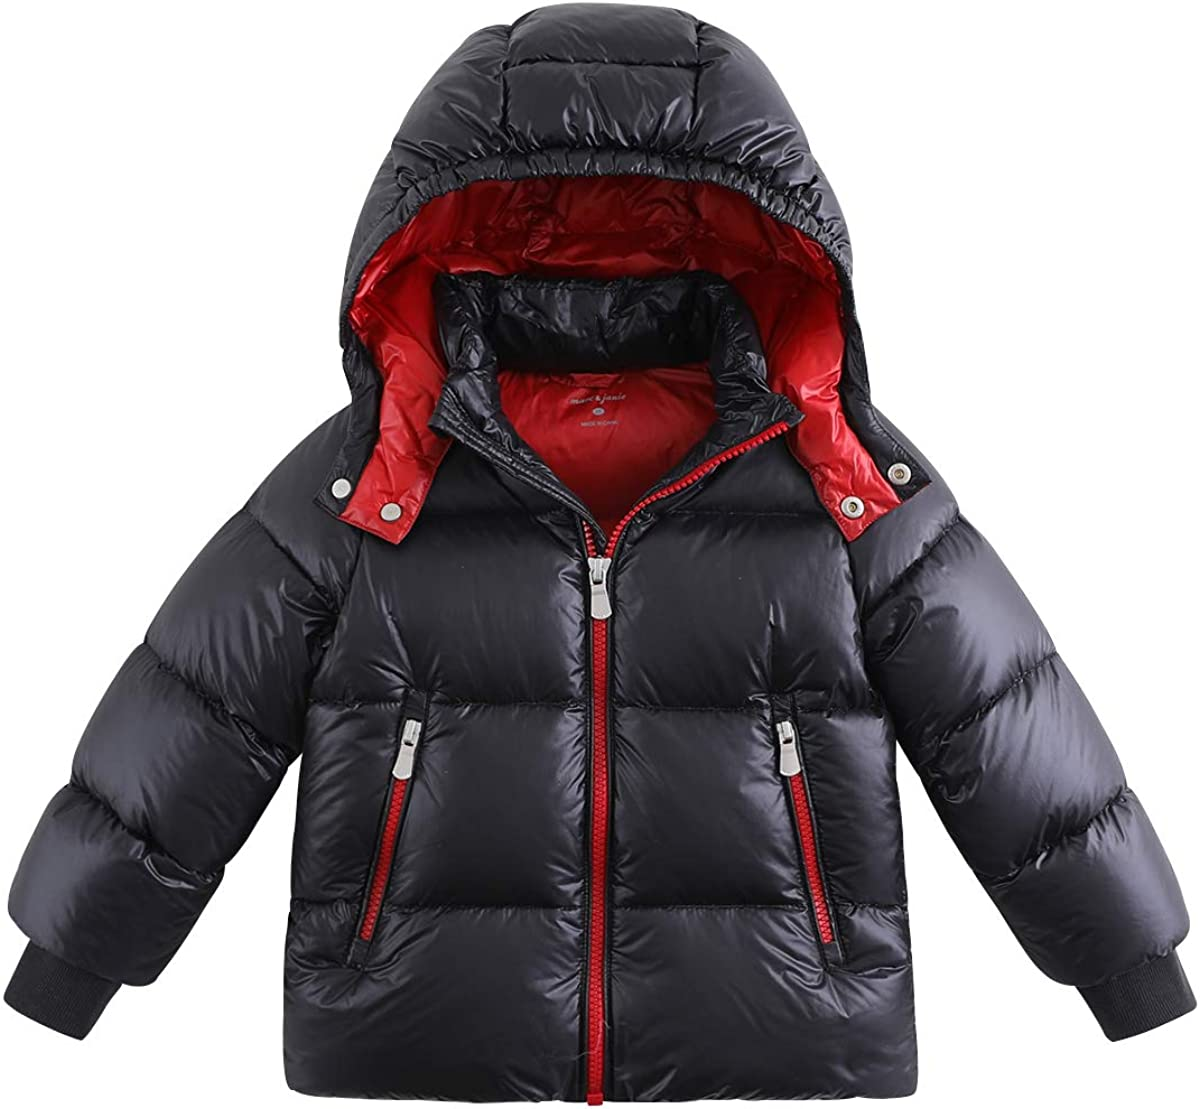 marc janie Boys' Winter Max 81% OFF Thick Selling Light Jacket Down Puffer Ultra